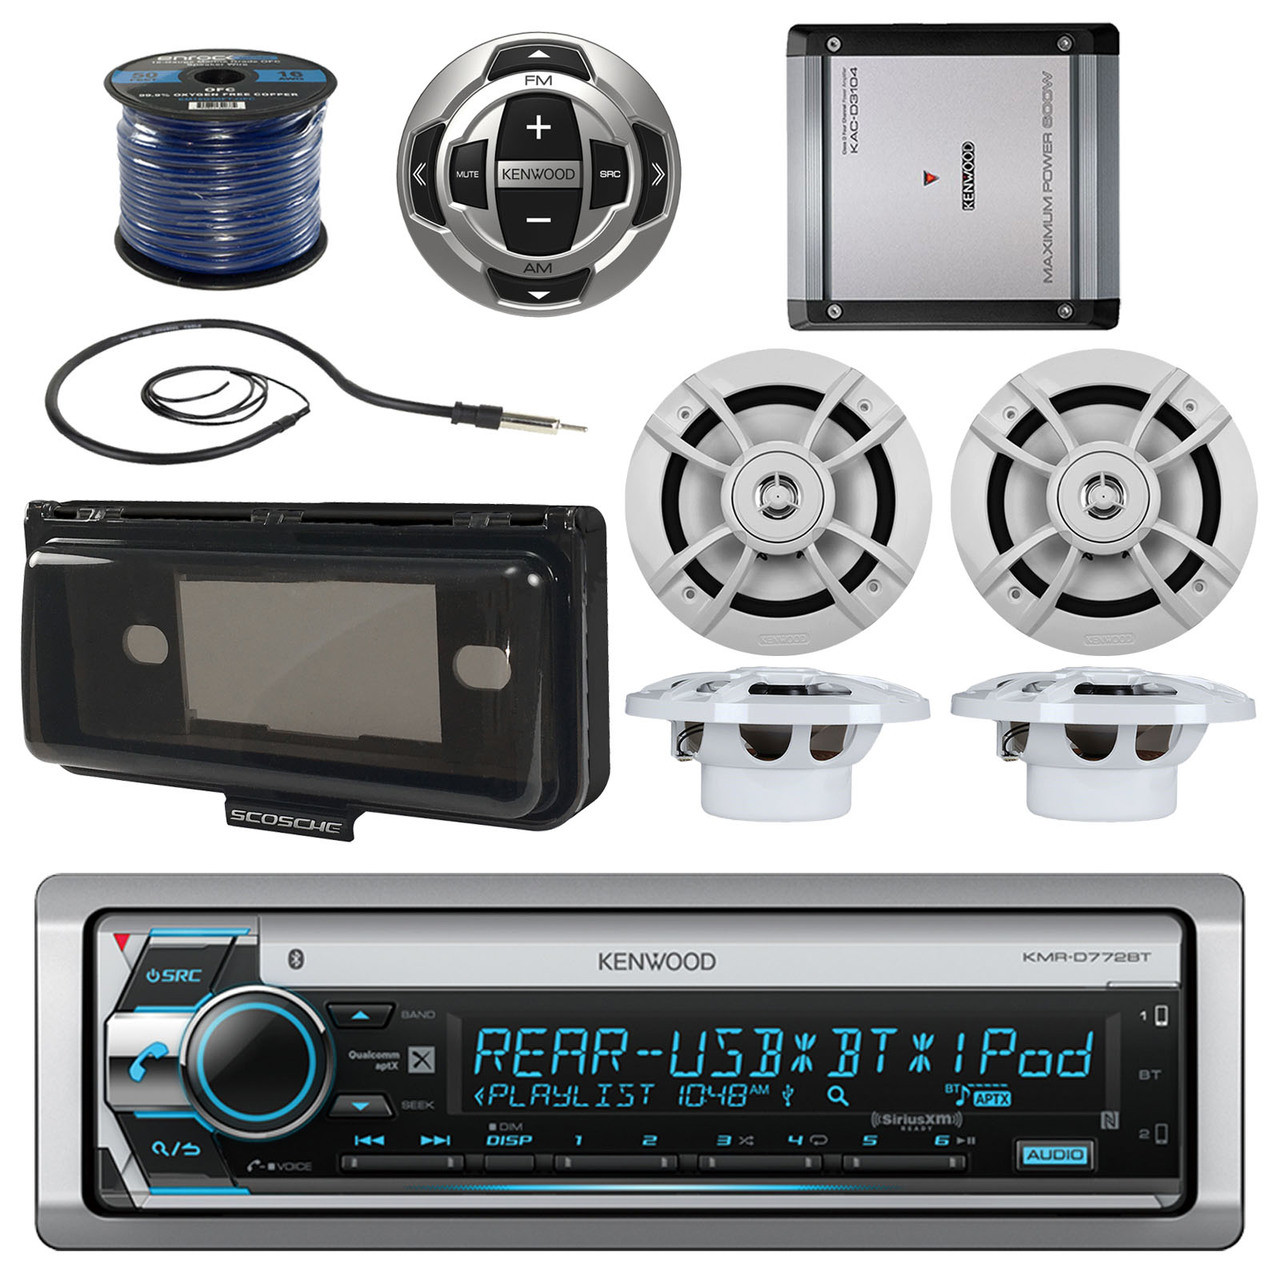 kenwood usb cd bluetooth boat radio remote 6 5 speakers wires amp antenna cover mbnpn498 road entertainment [ 1280 x 1280 Pixel ]